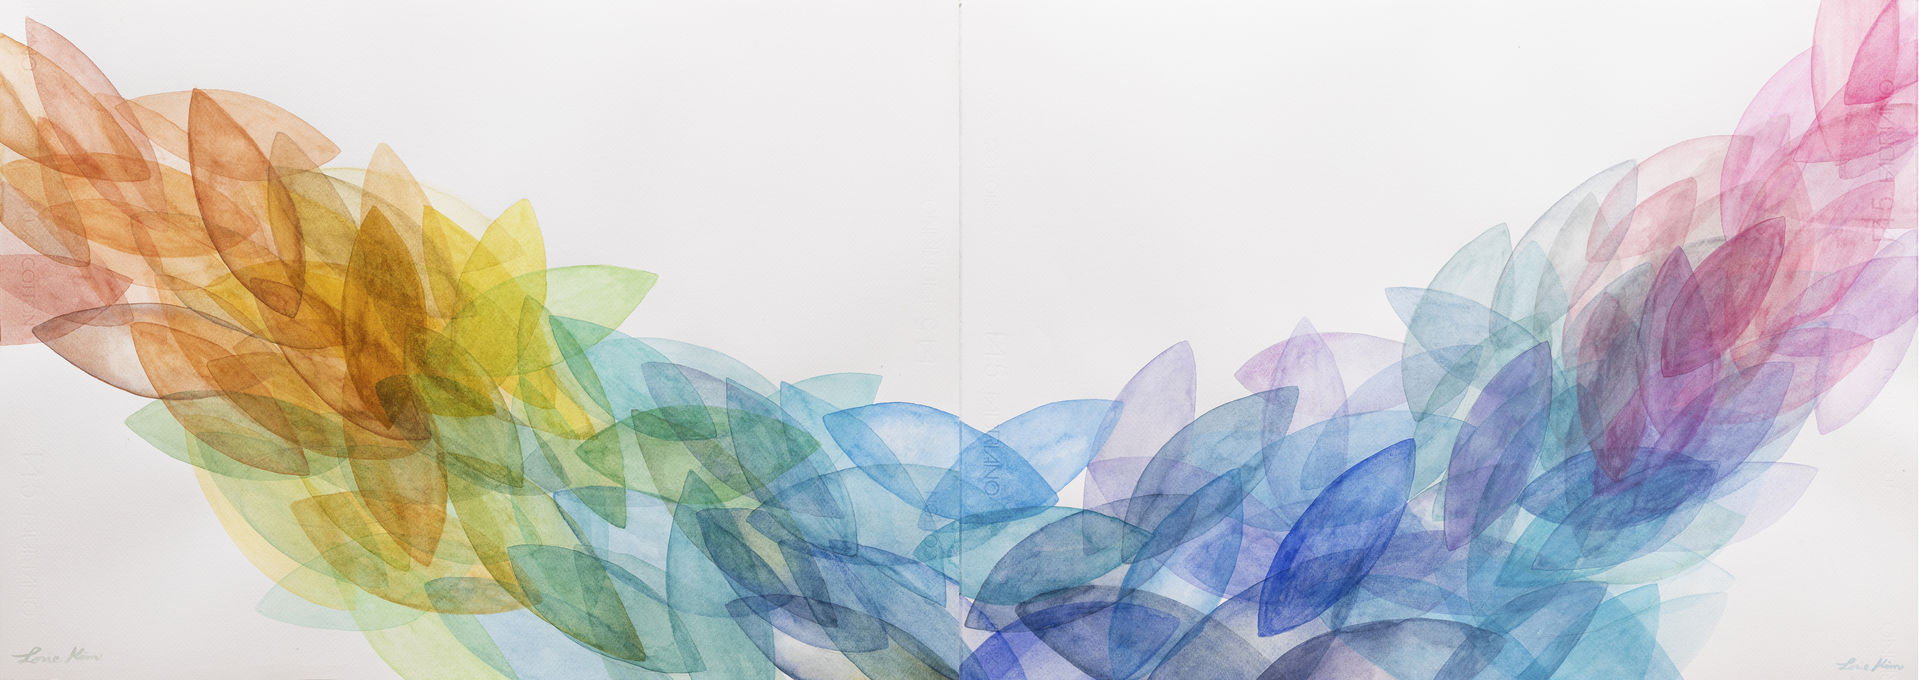 """""""Mind Nature-It flows like a river"""" / 50x140cm / Watercolor on paper / 2019"""